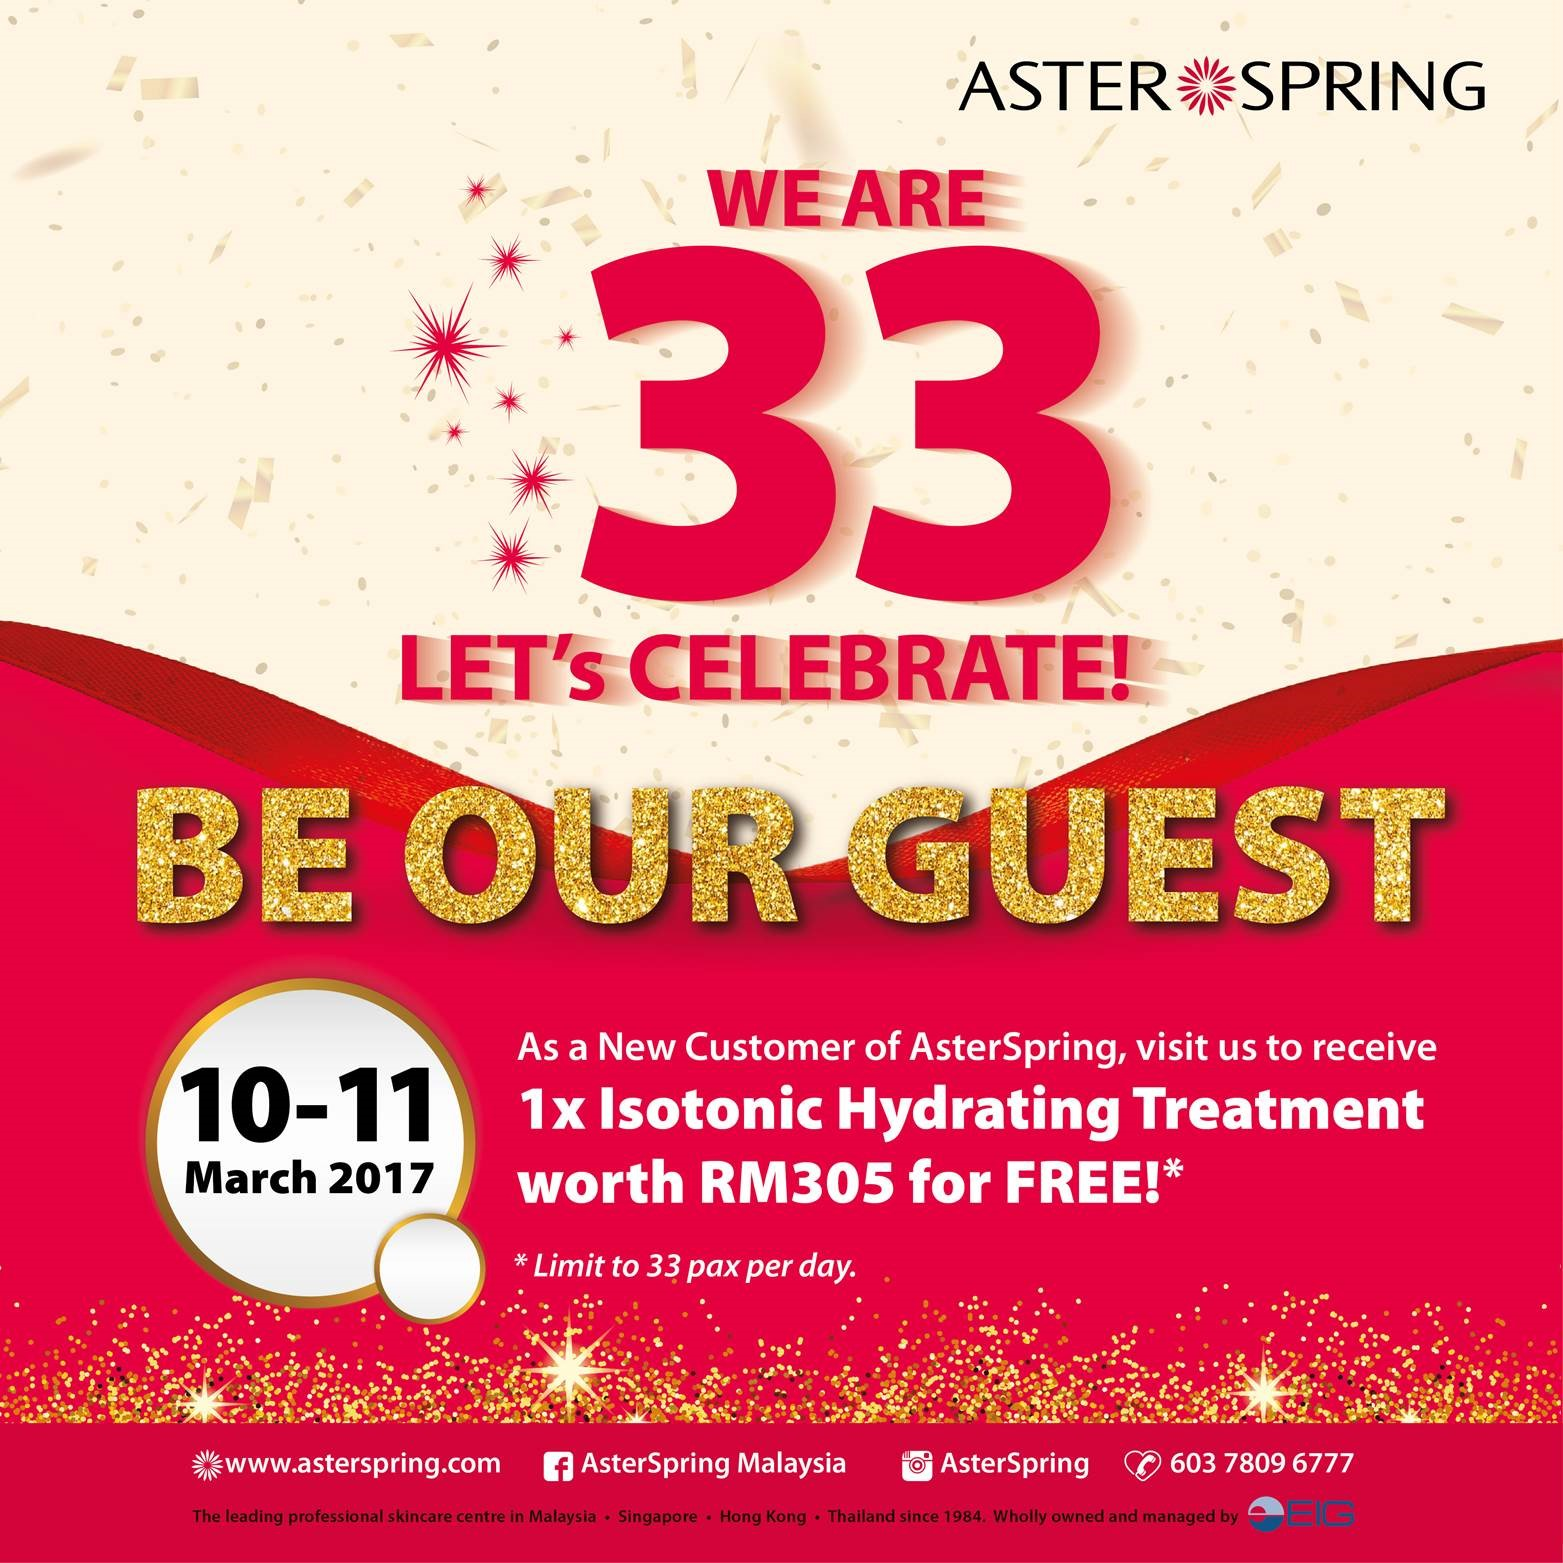 AsterSpring 33rd Anniversary